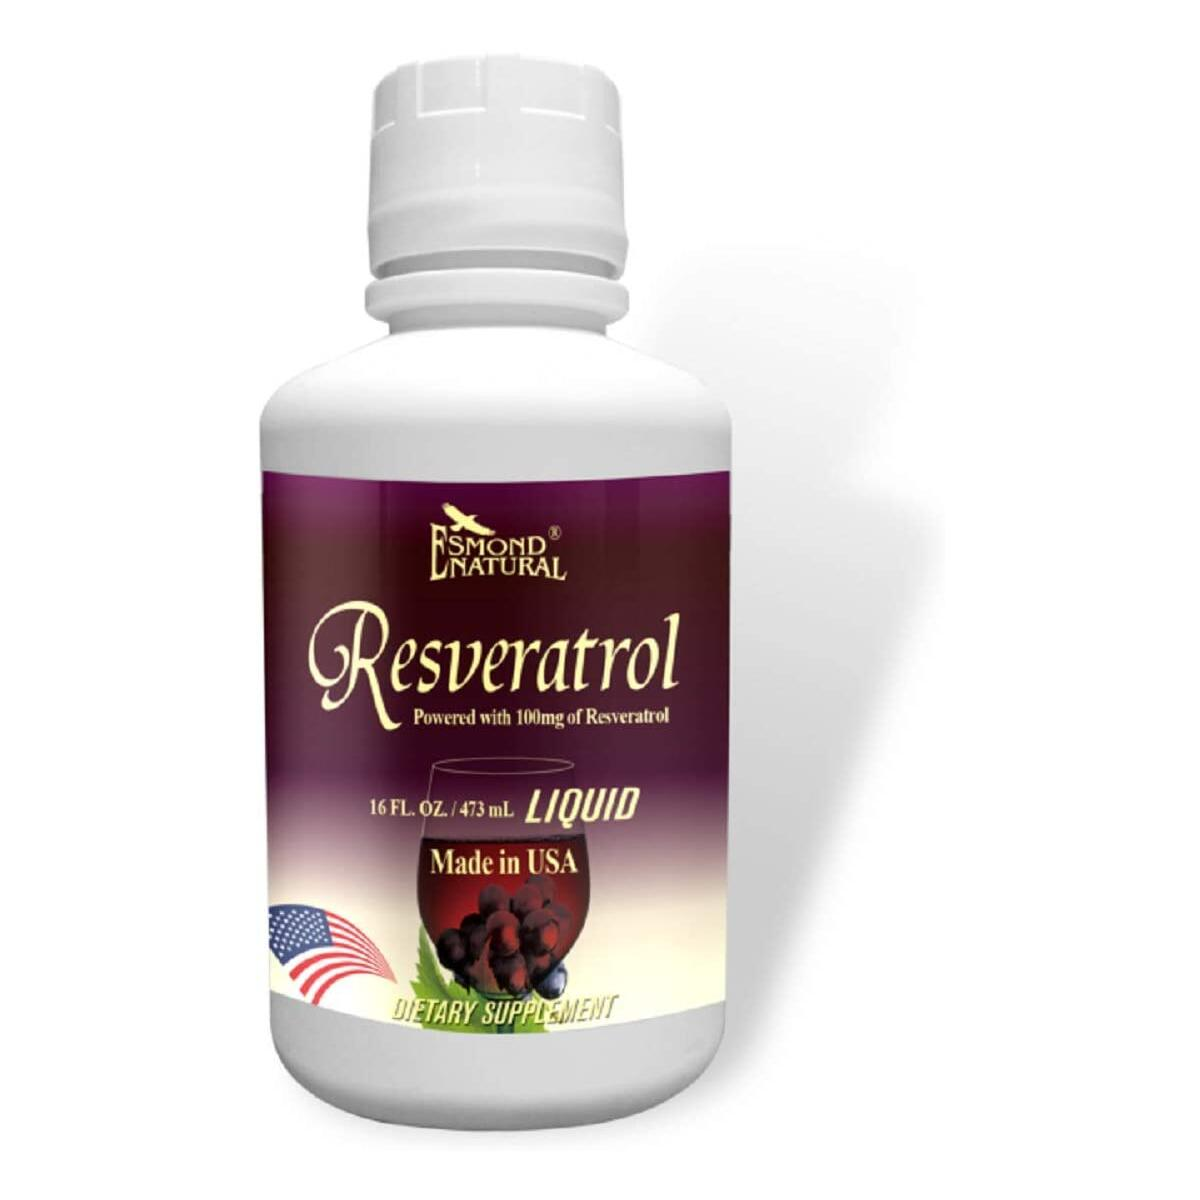 (3 Count, 10% Off) Esmond Natural: Resveratrol (Red Grape & Pomegranate), GMP, Natural Product Assn Certified, Made in USA-473ml, 48 Fl Oz